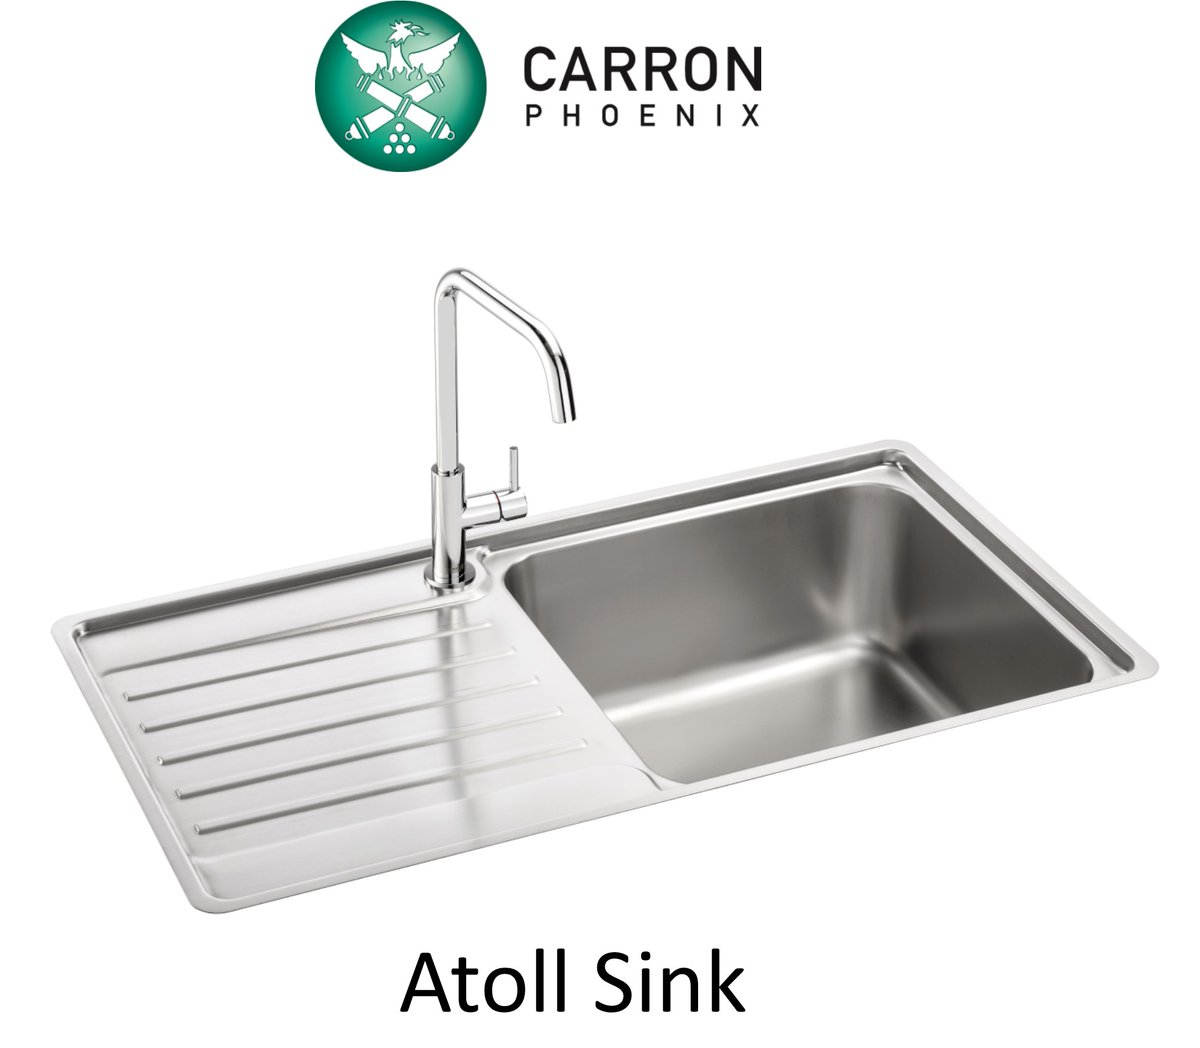 2019 Product Highlight Our Atoll stainless steel inset #sink with its generously large bowls and crisp drainer grooves is the perfect mix of high functionality and durable good looks. What's not to love? 😍 ow.ly/oaQ850xsx0R